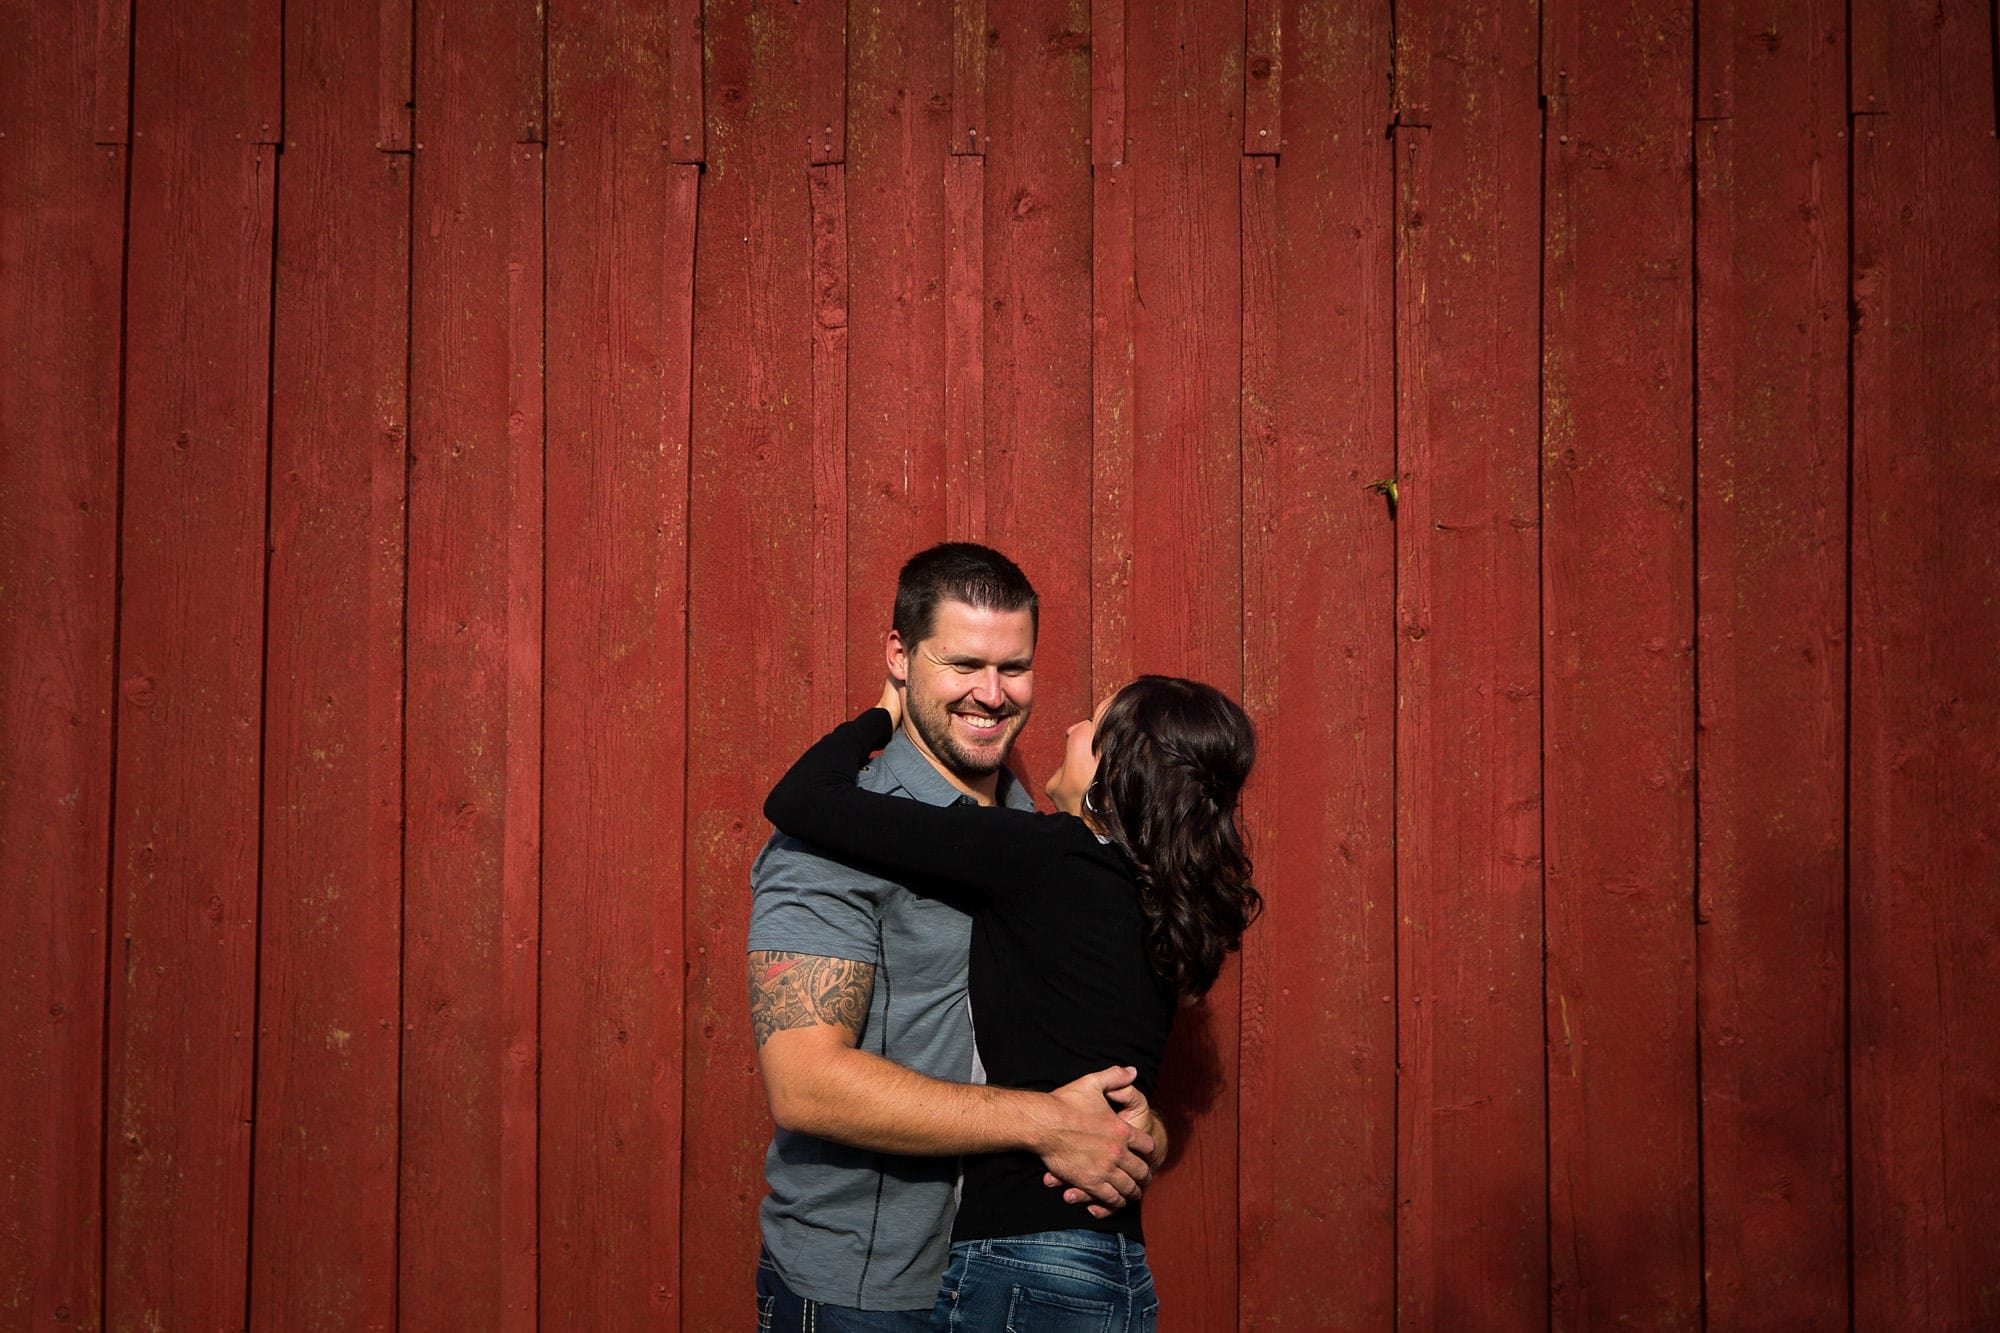 Nick laughs with Melanie against a red barn wall during their Golden, Colorado engagement session